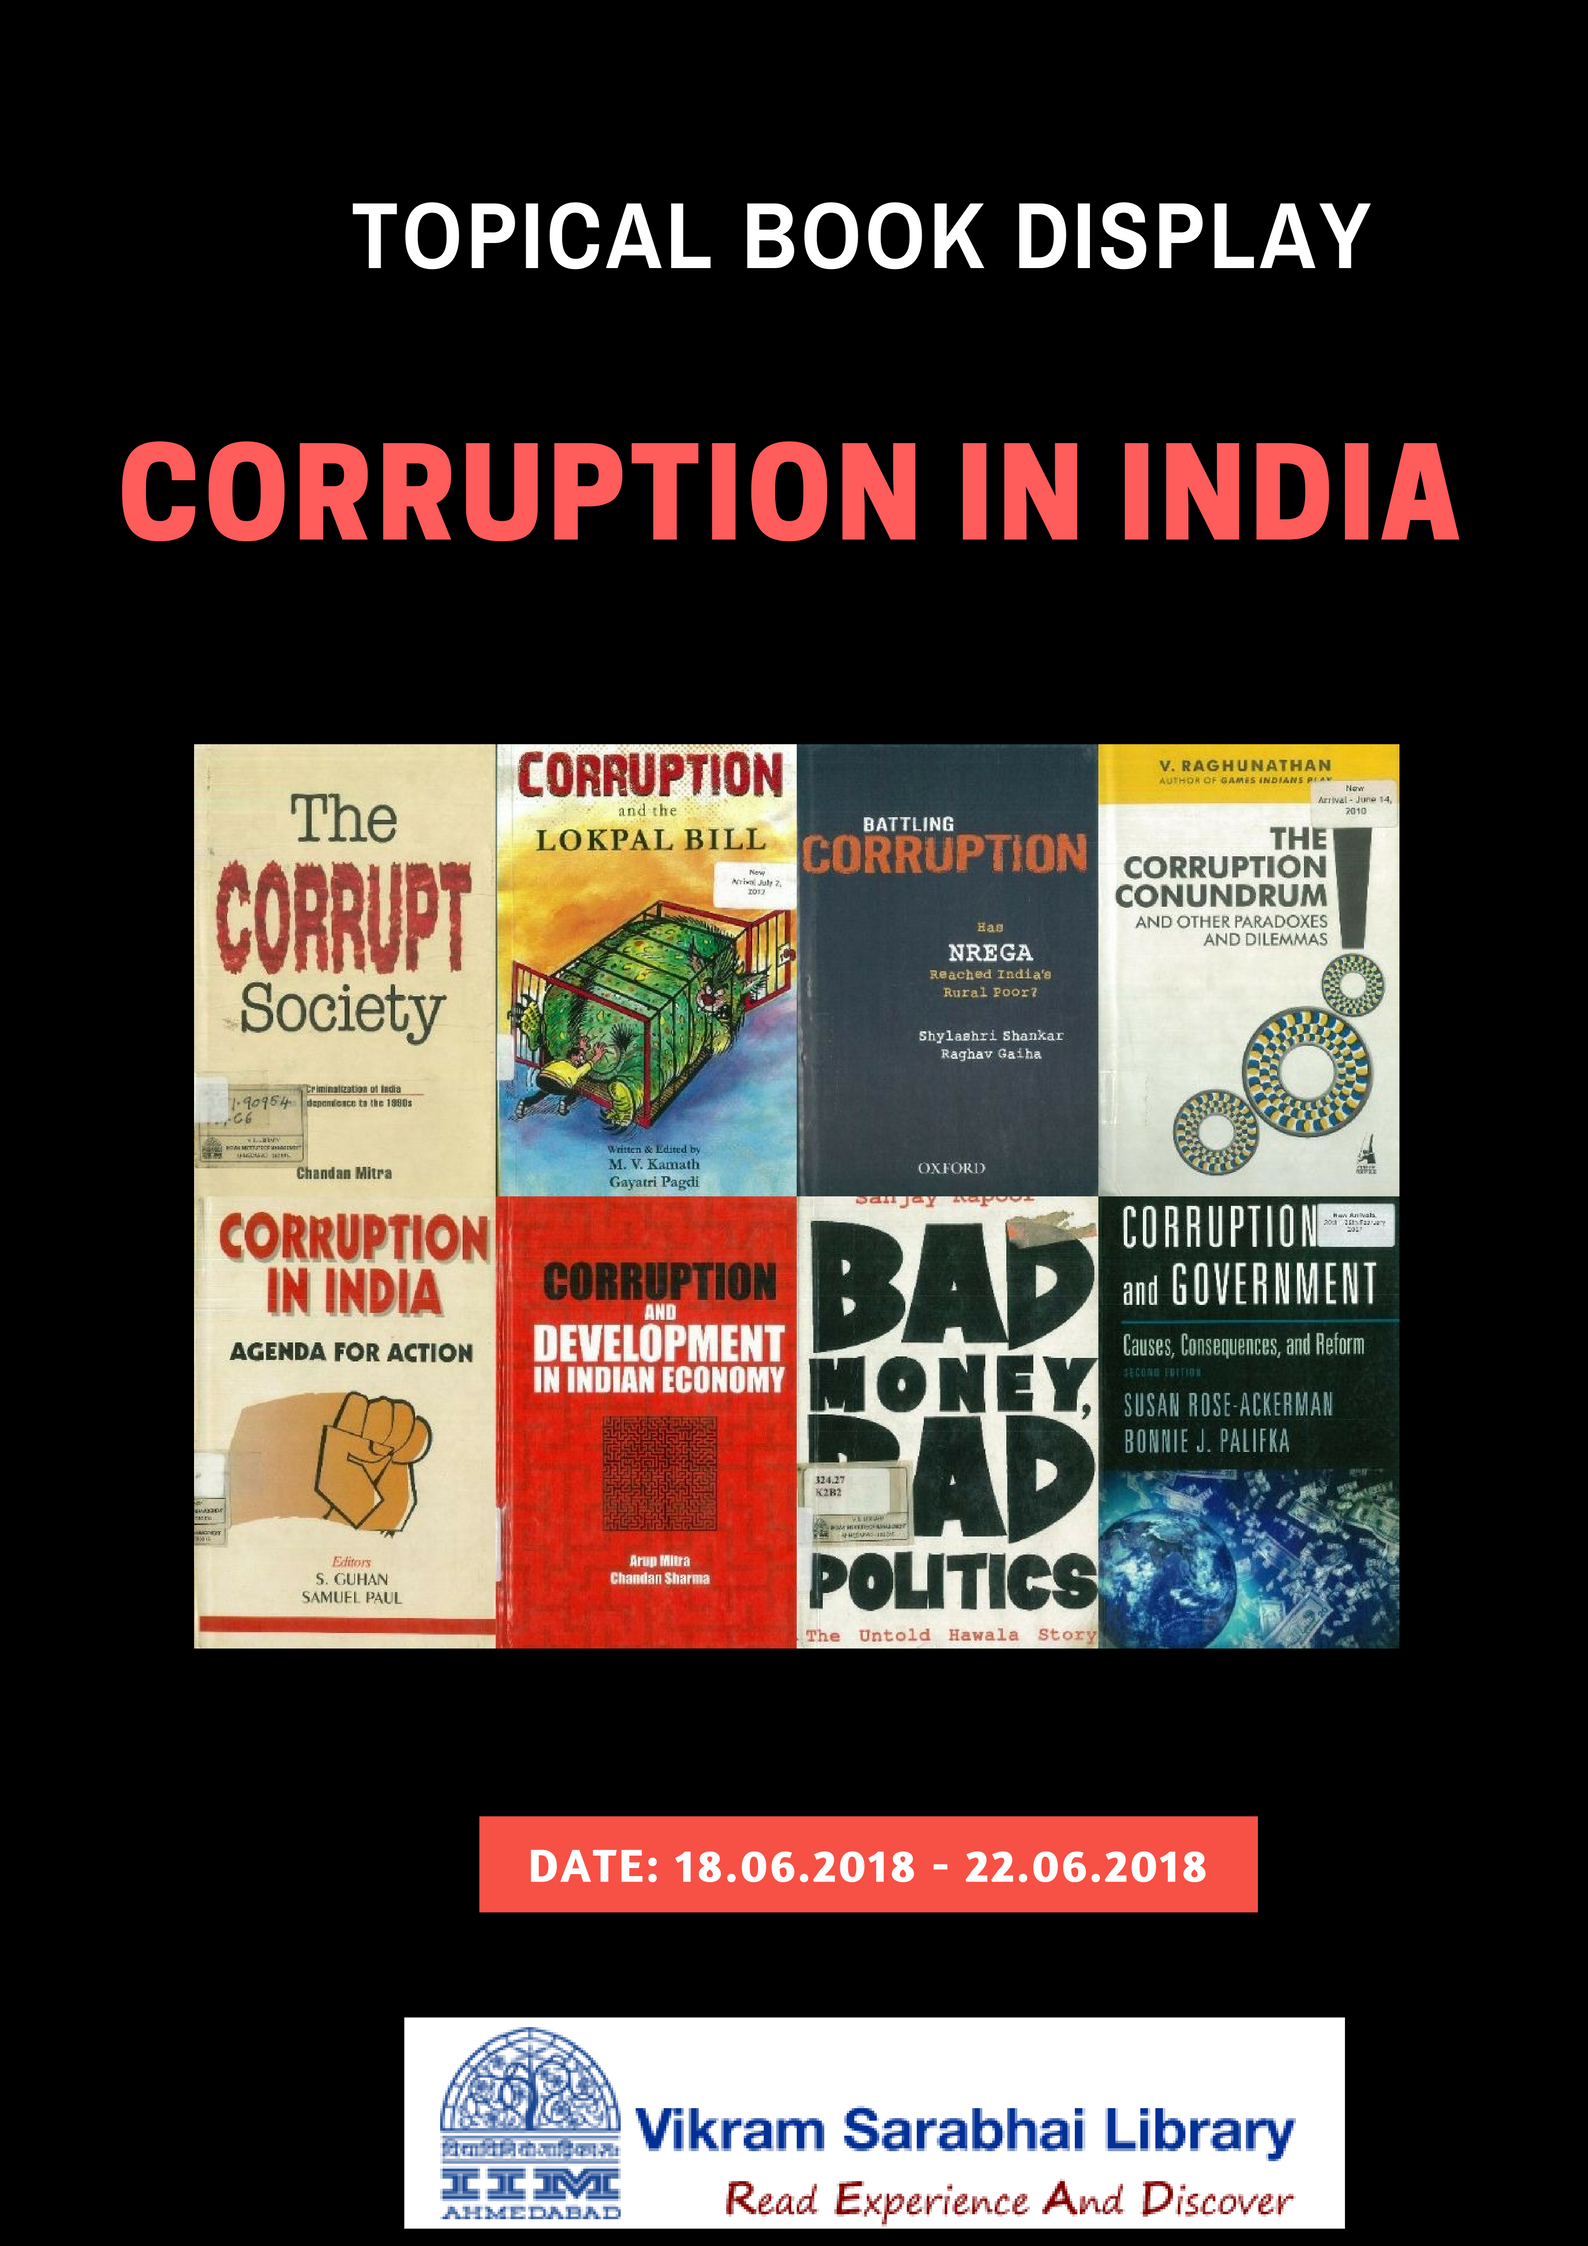 Book display on Corruption in India